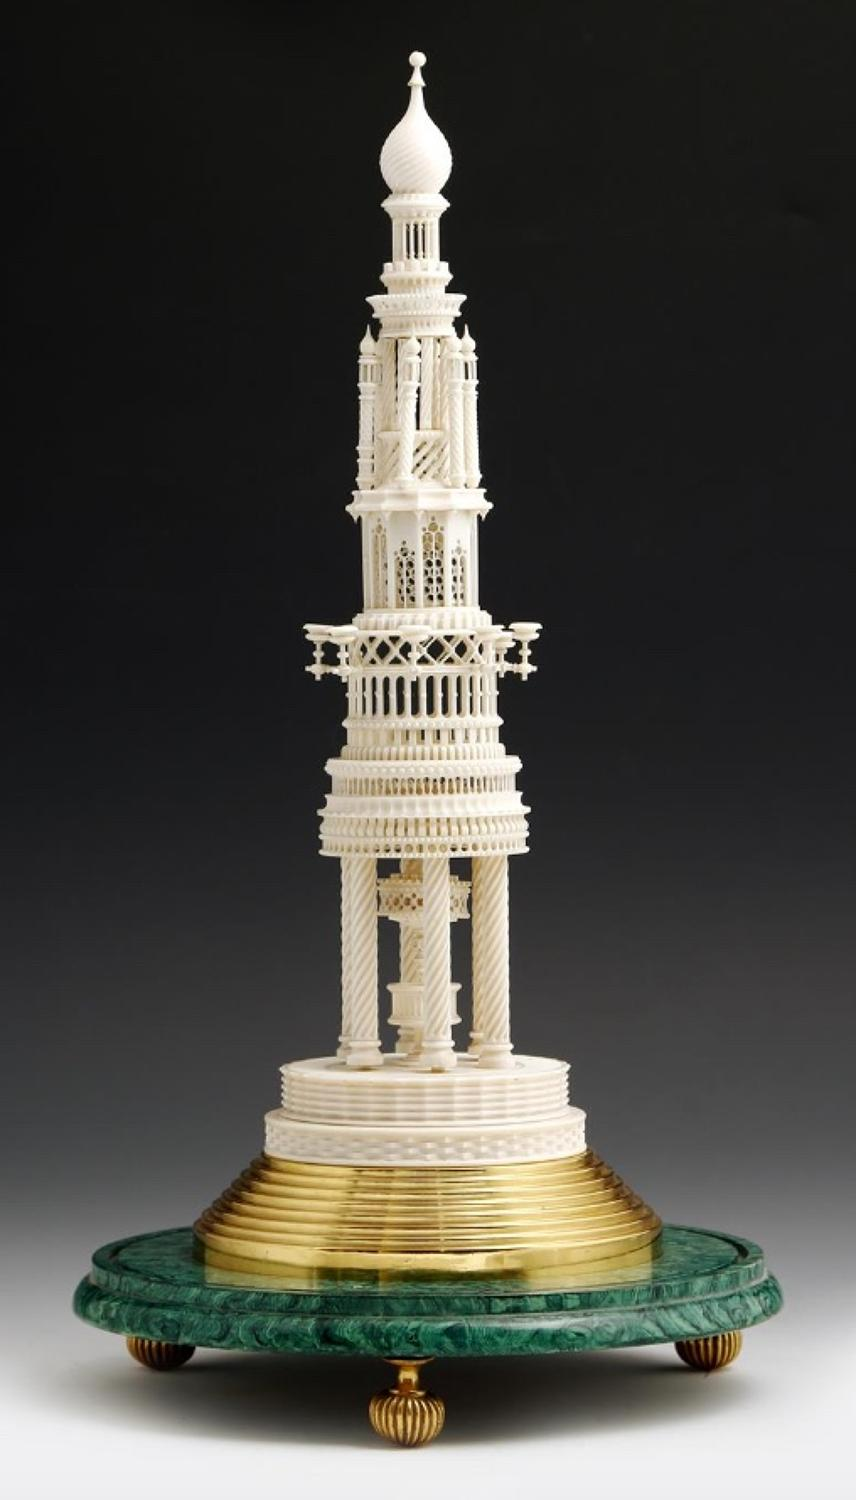 A finely carved 19th century ivory tower